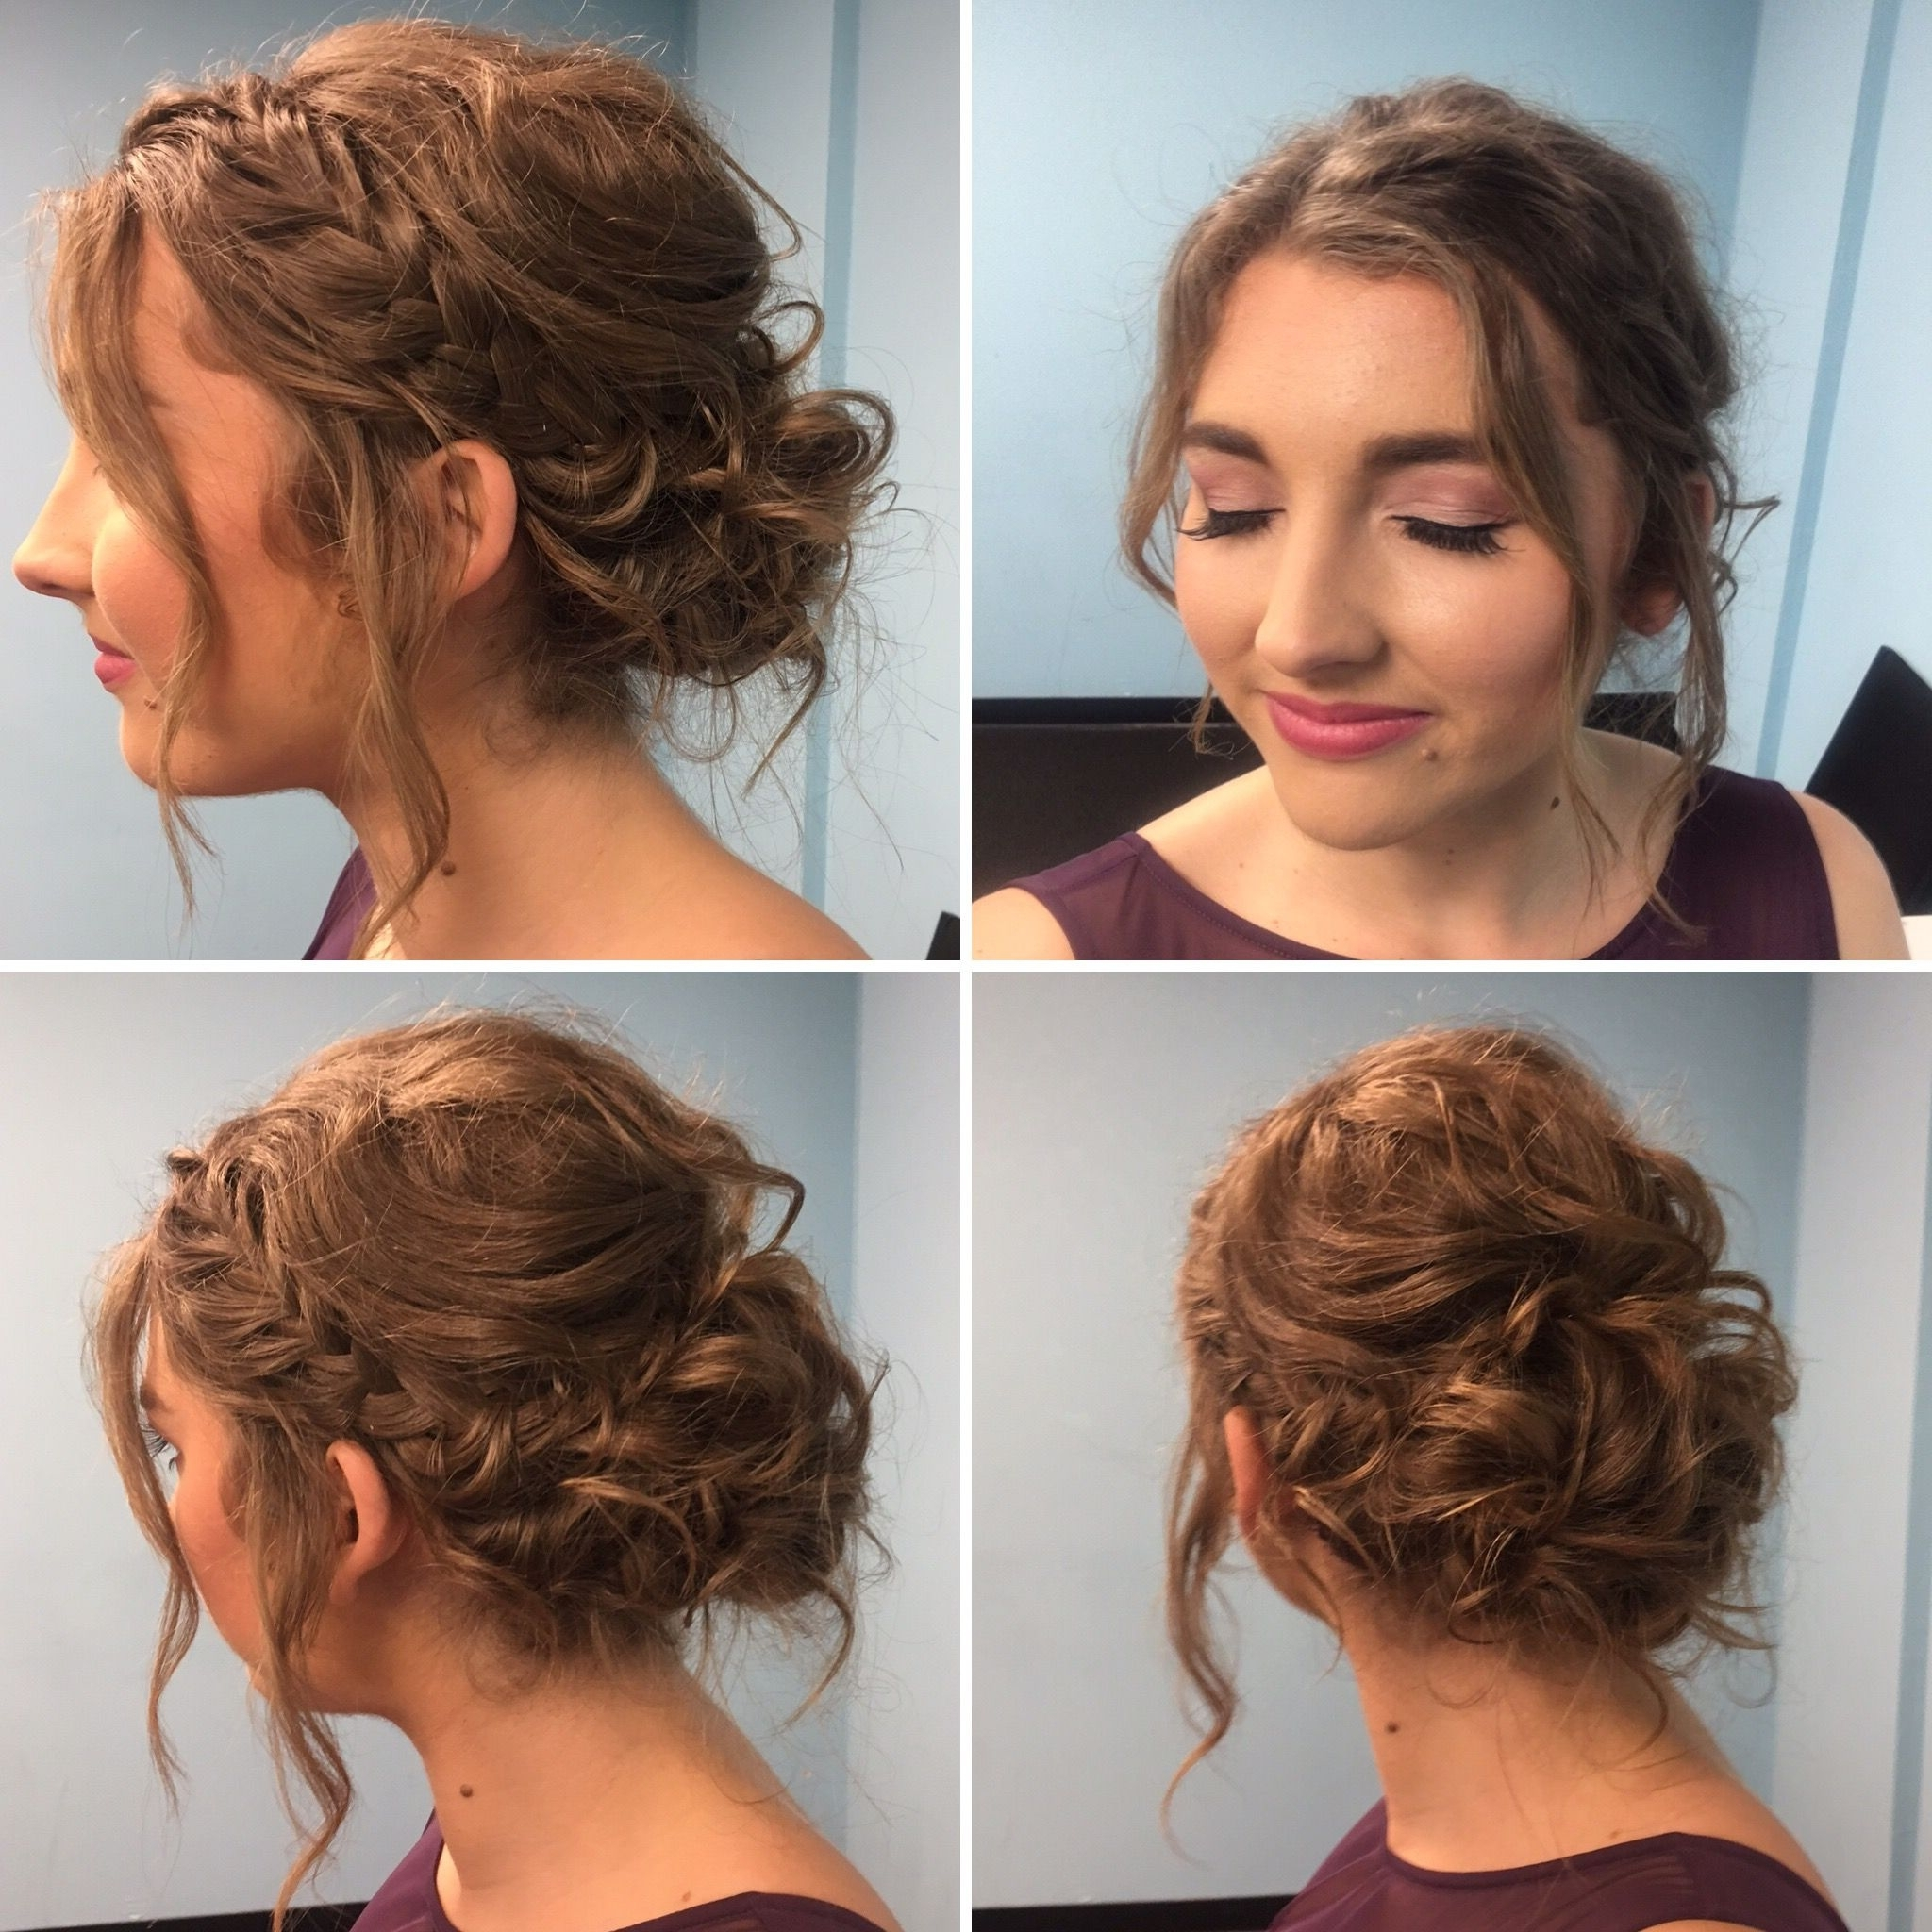 Widely Used Wedding Hairstyles For Short To Mid Length Hair Regarding Bridesmaid Hair. Short Hair Updo. Bridesmaid Makeup (View 7 of 15)